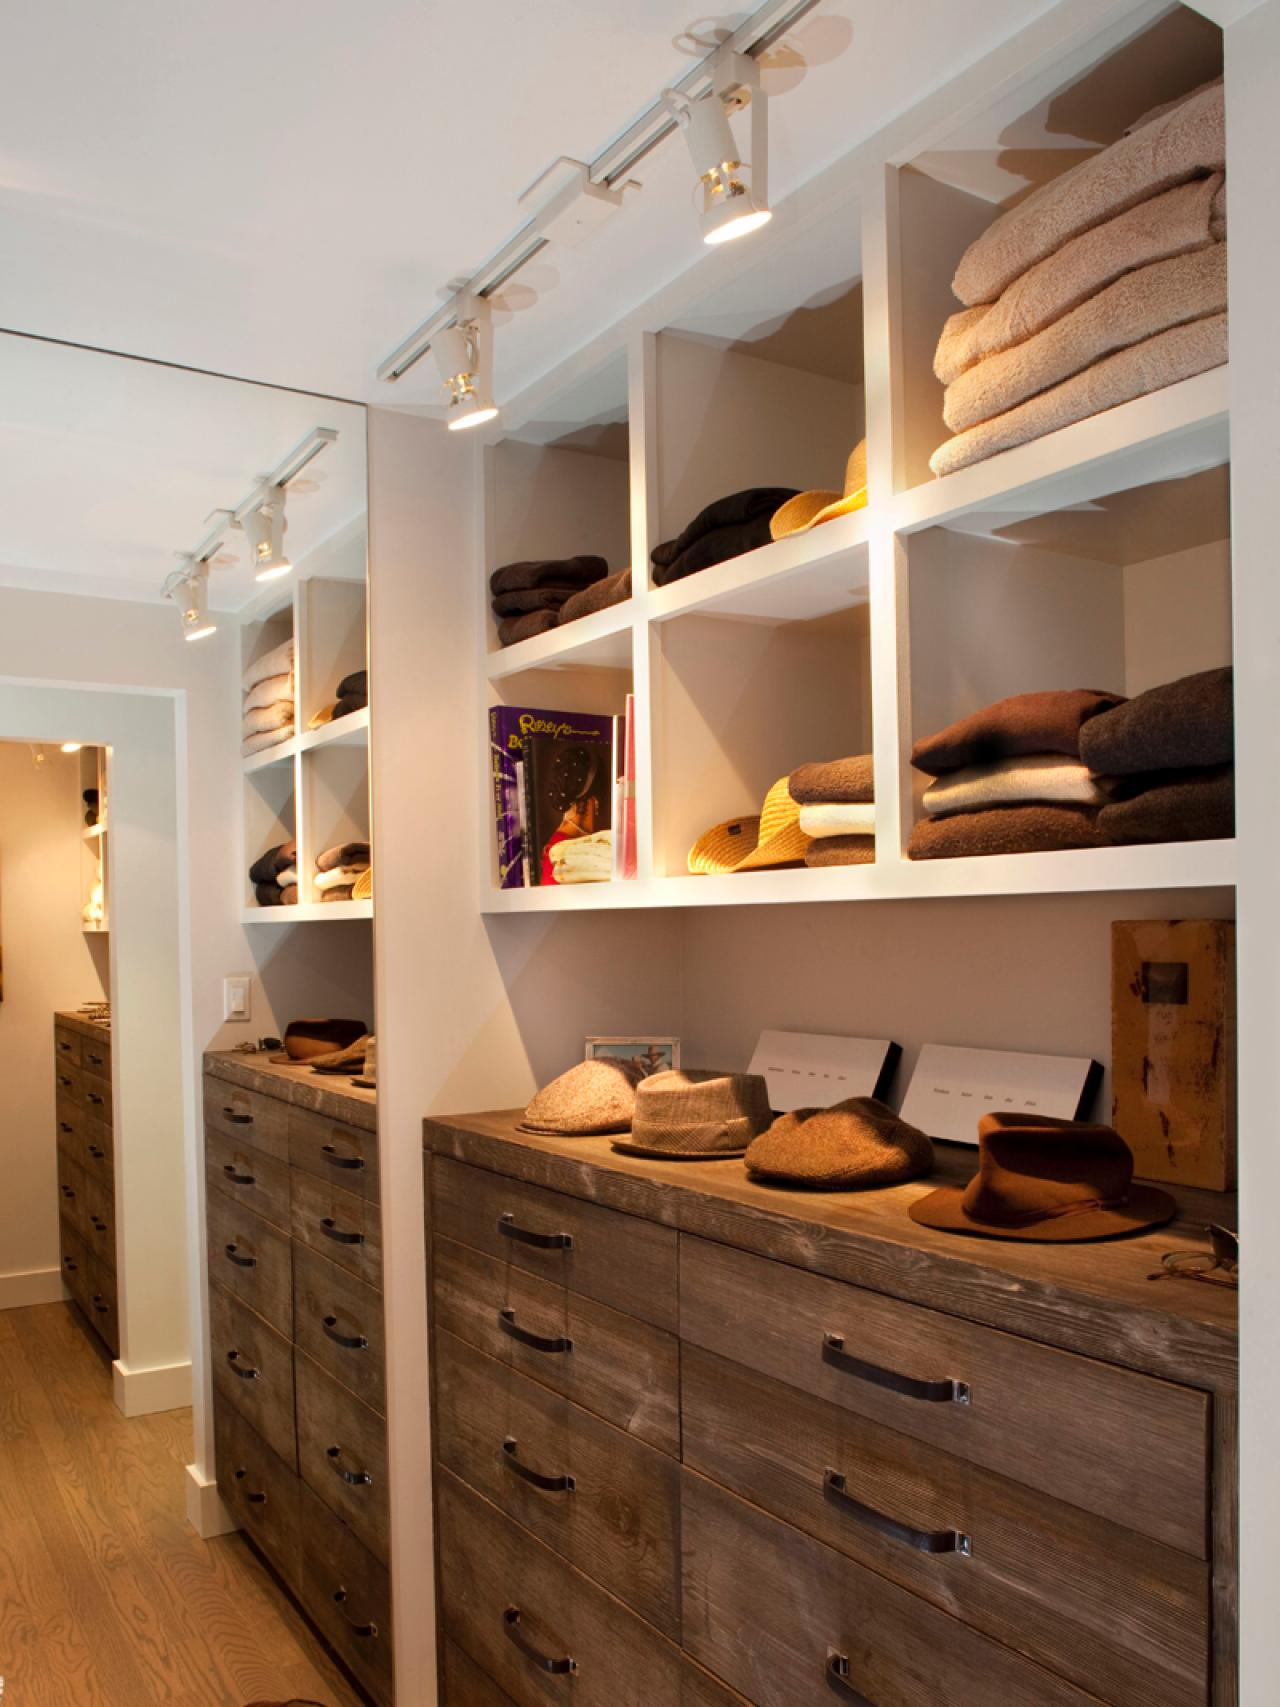 Spotted light fixtures for closet space